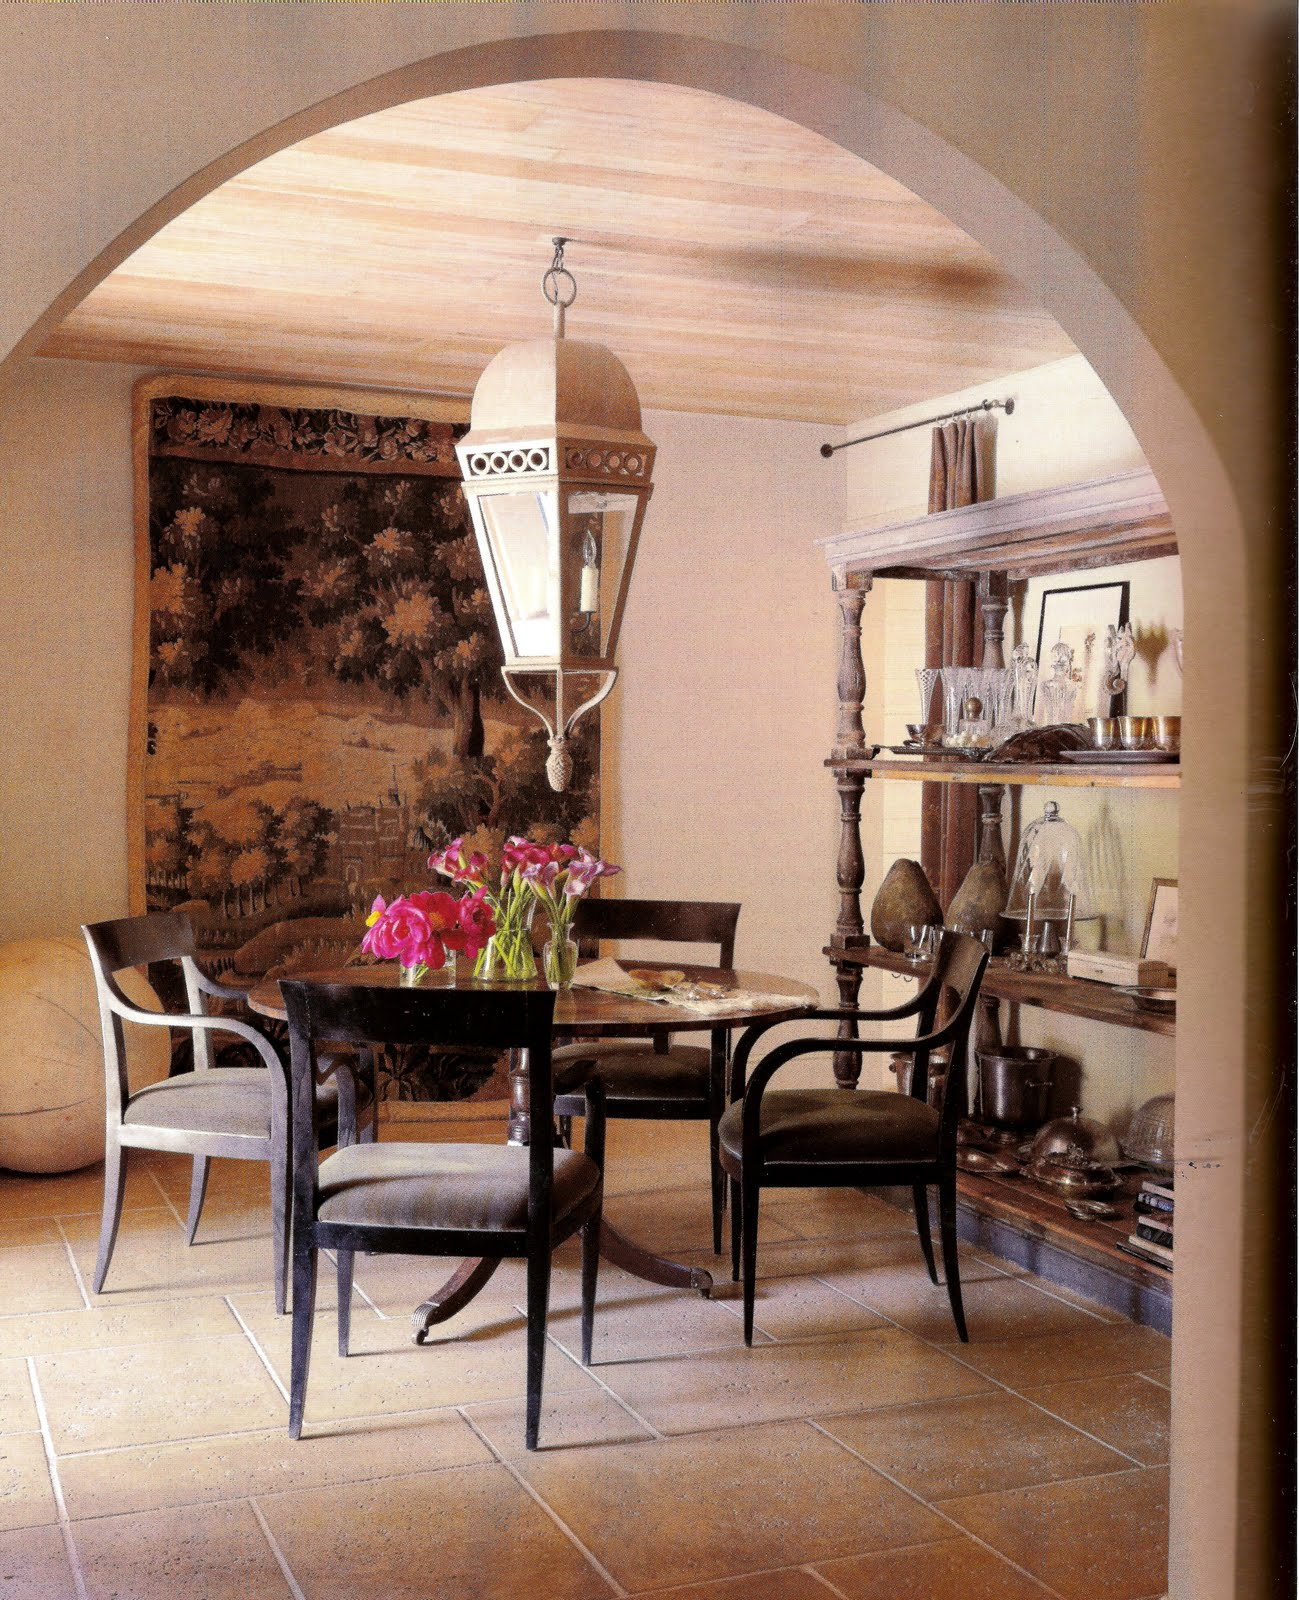 according to lia magazine monday small spaces